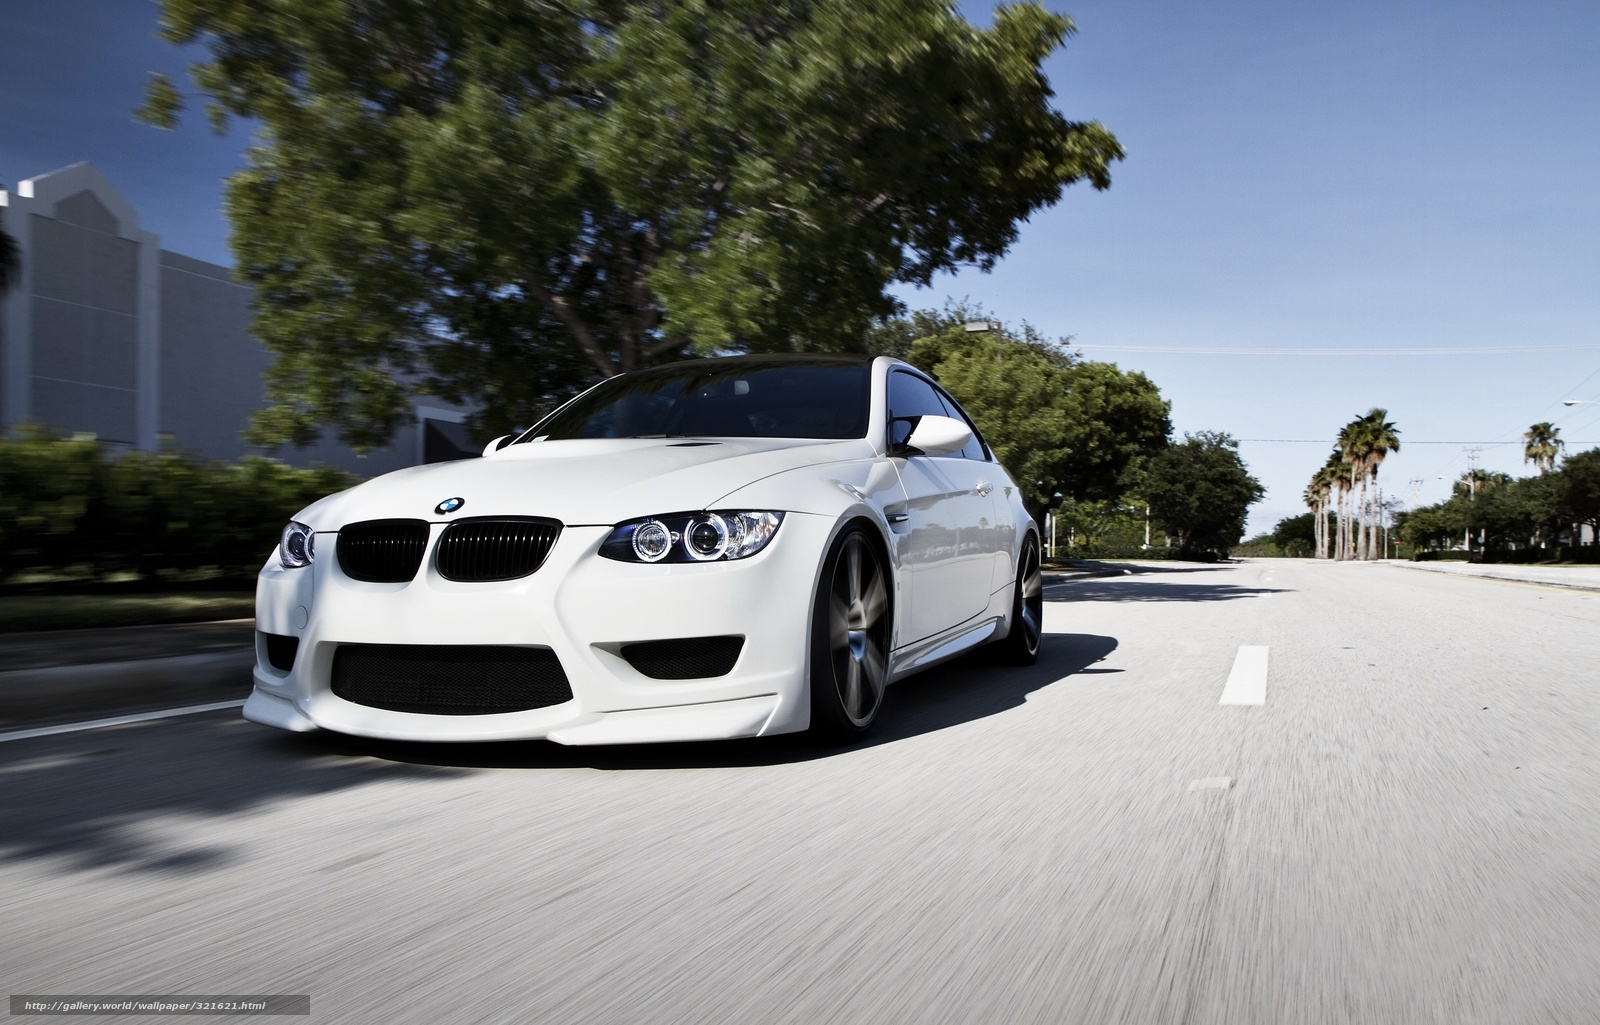 Download wallpaper bmw m3 best car cars free desktop wallpaper in the resolution 2560x1640 picture 321621